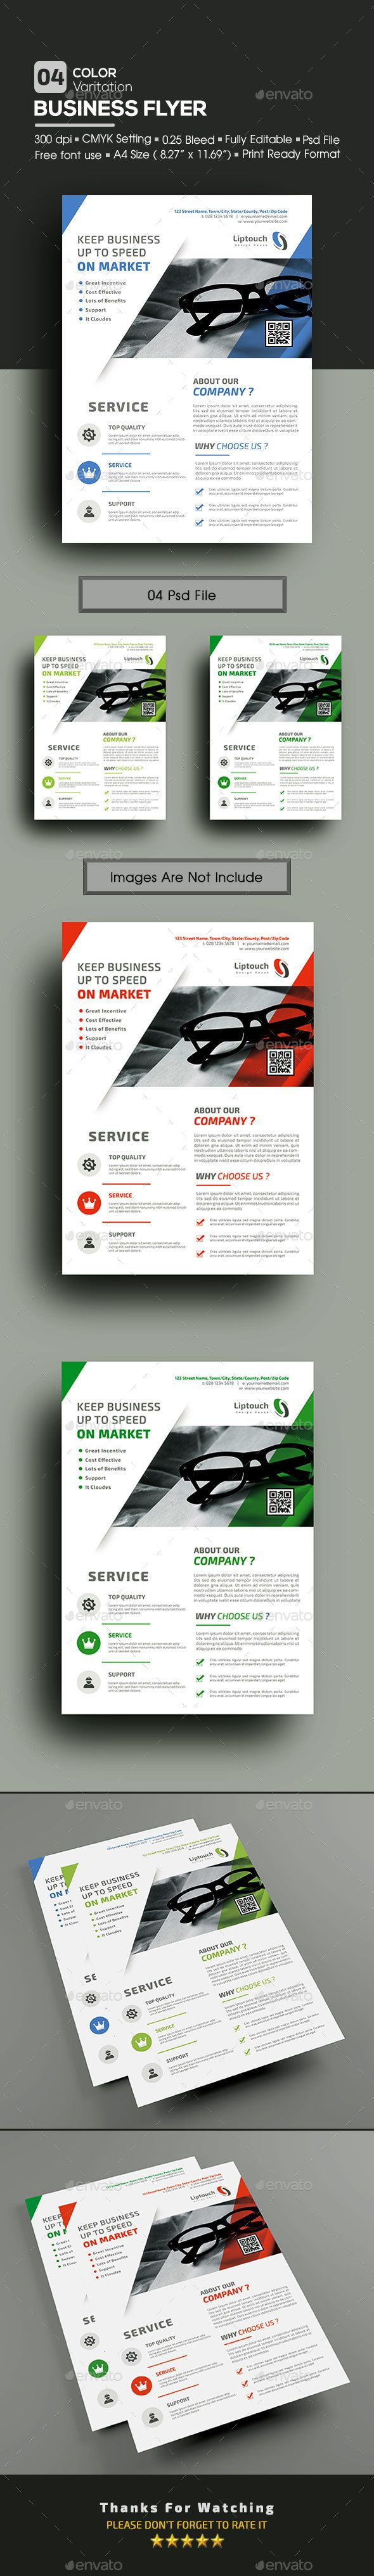 Corporate / Business Flyer Template PSD